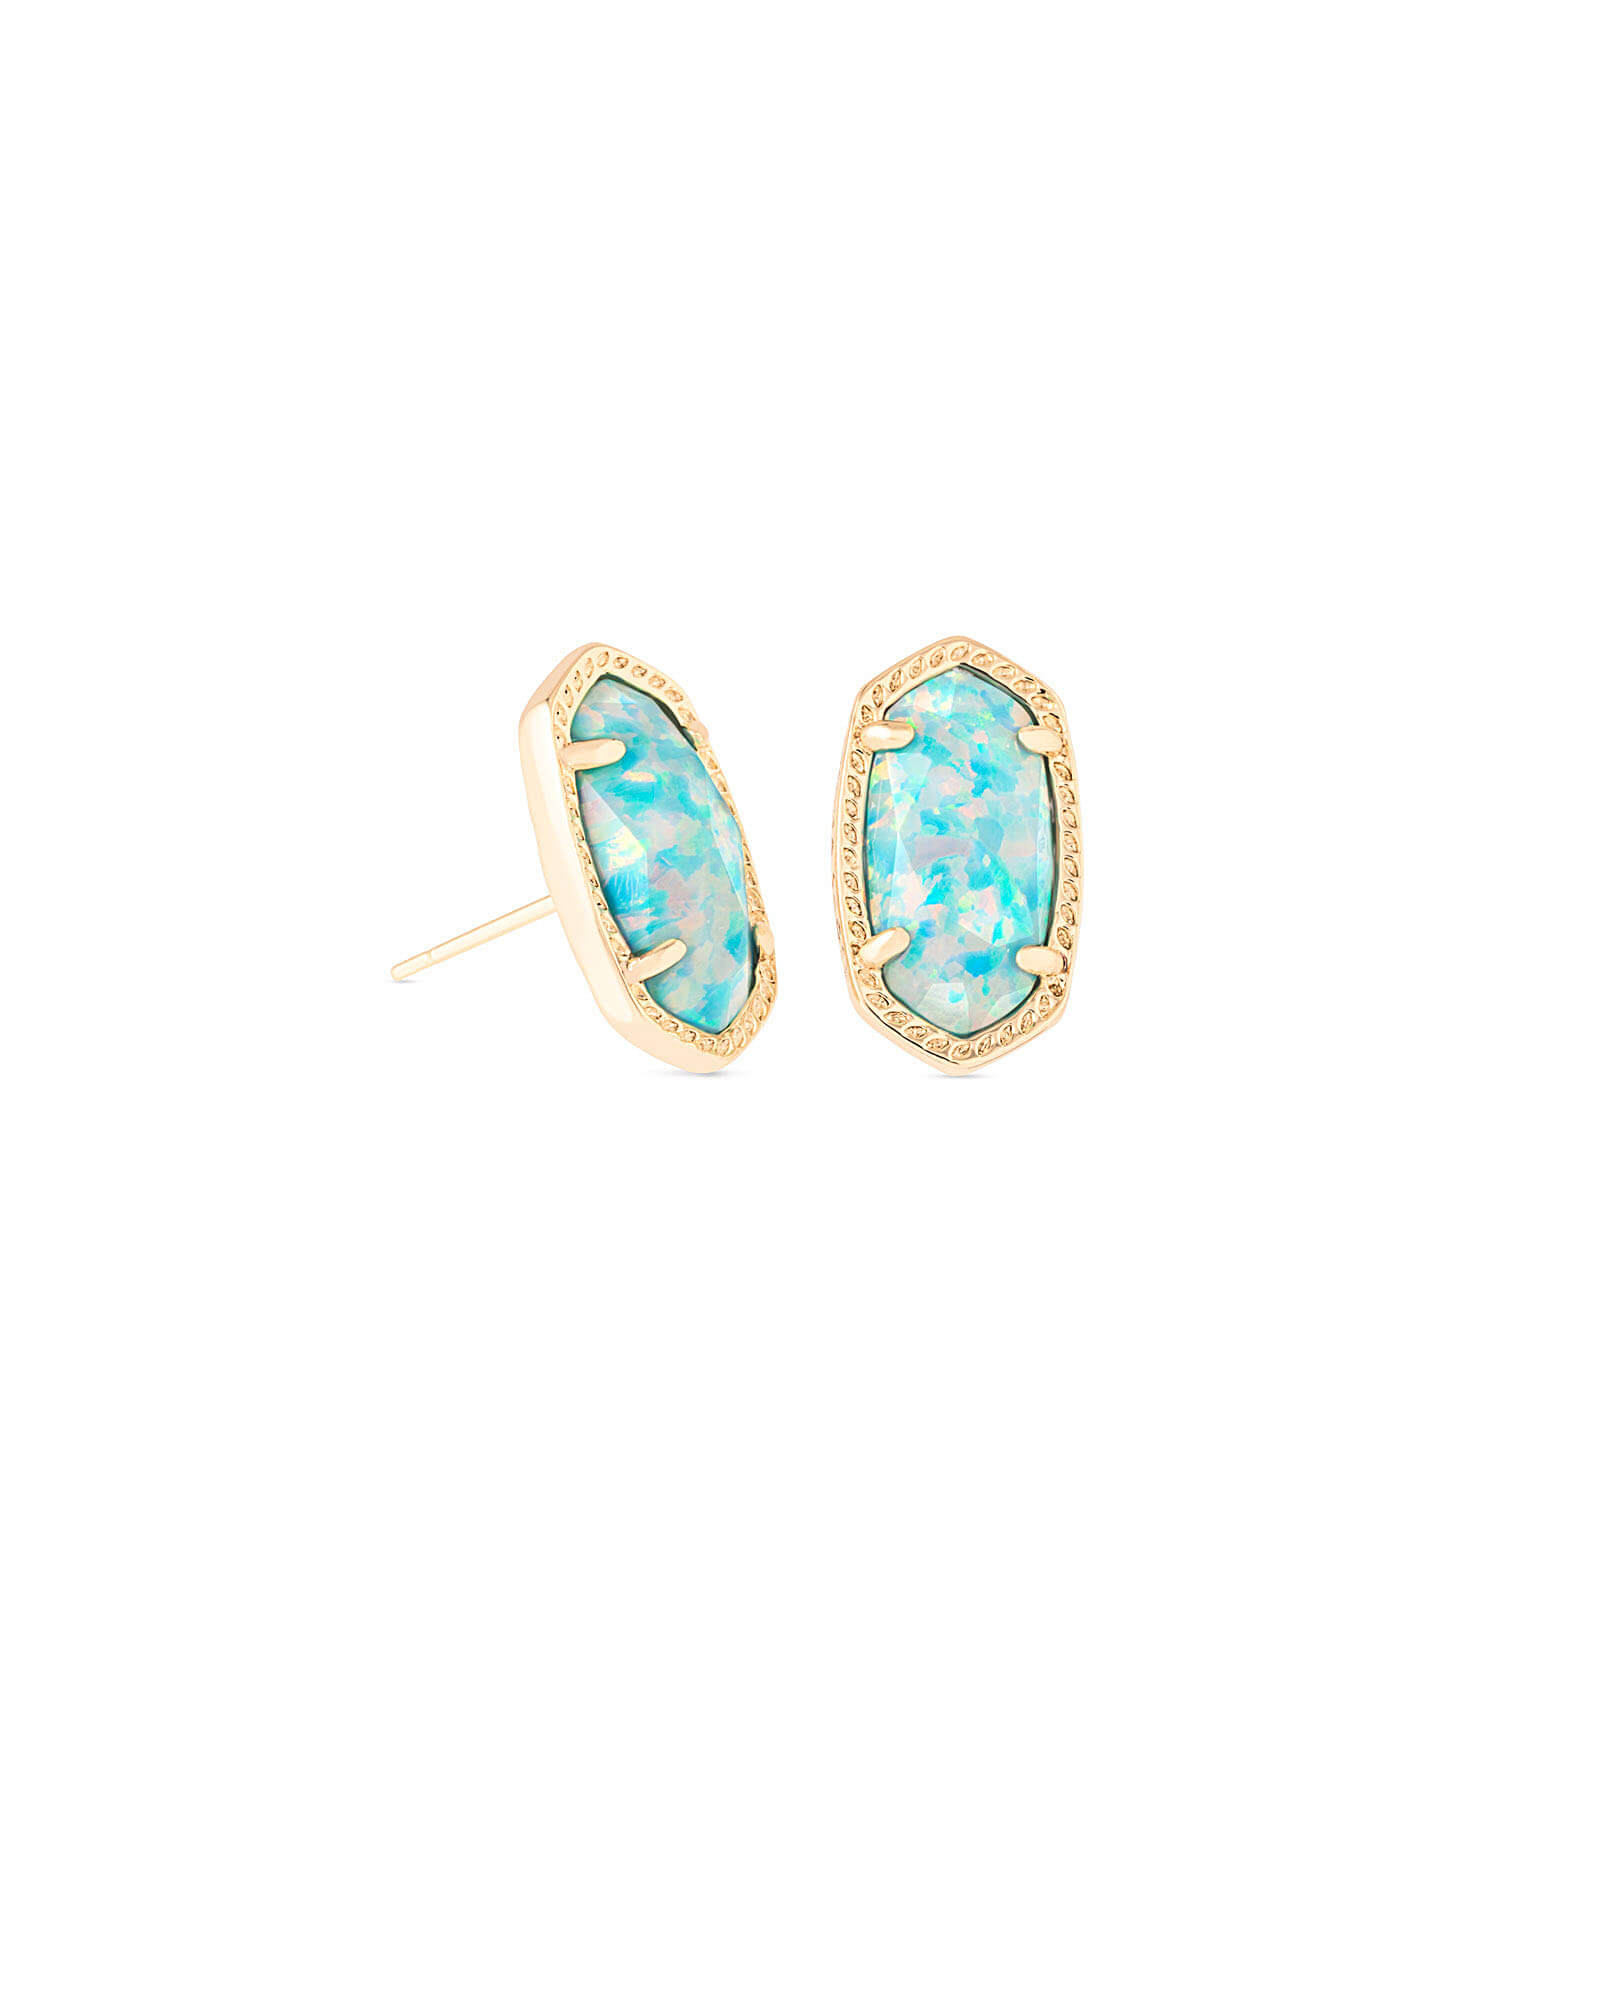 Ellie Stud Earrings in Aqua Kyocera Opal